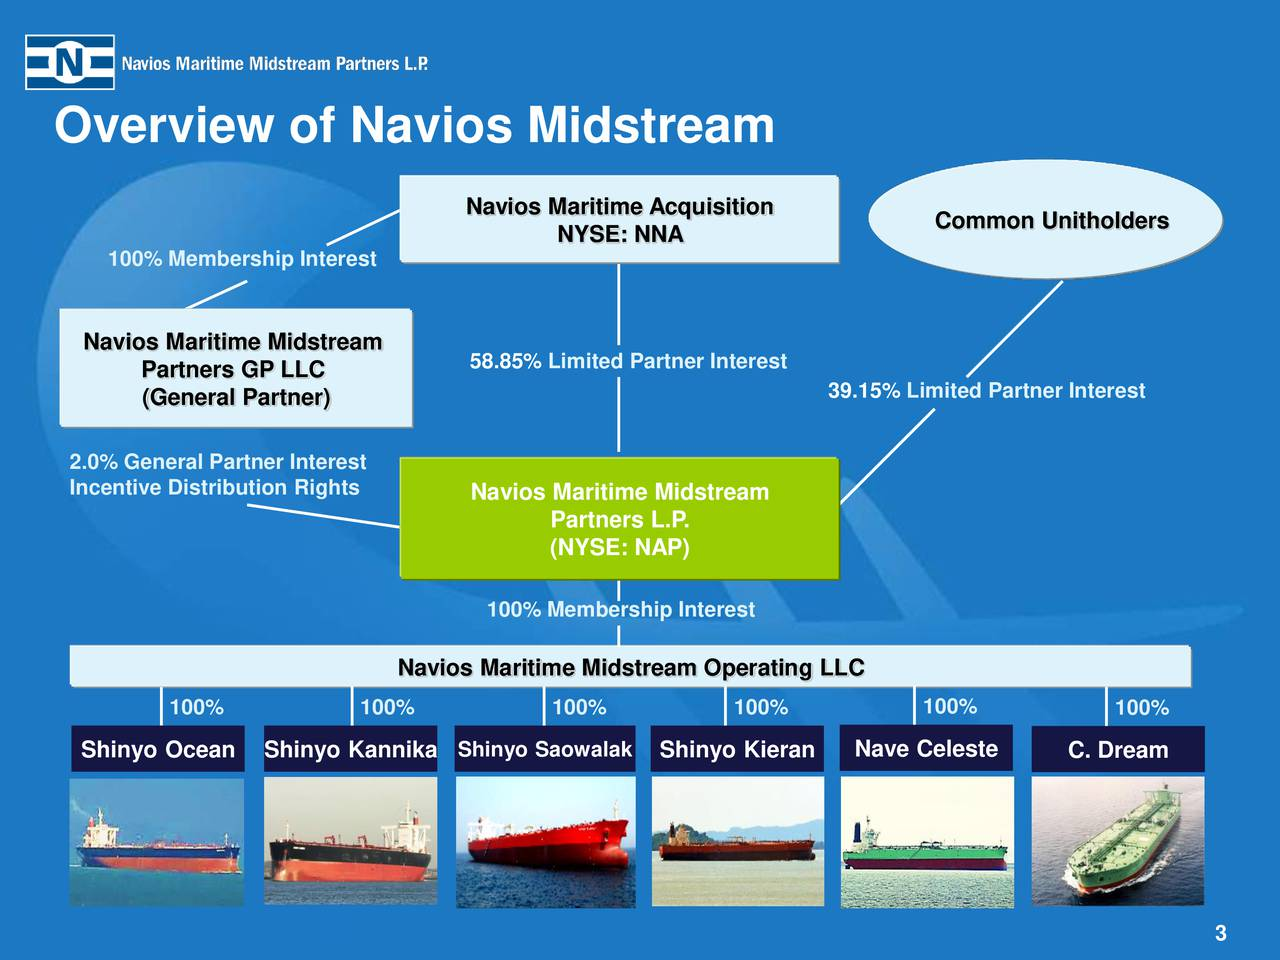 Overview of Navios Midstream Navios Maritime Acquisition Common Unitholders NYSE: NNA 100% Membership Interest Navios Maritime Midstream Partners GP LLC 58.85% Limited Partner Interest (General Partner) 39.15% Limited Partner Interest 2.0% General Partner Interest Incentive Distribution Rights Navios Maritime Midstream Partners L.P. (NYSE: NAP) 100% Membership Interest Navios Maritime Midstream Operating LLC 100% 100% 100% 100% 100% 100% Shinyo Ocean Shinyo Kannika Shinyo Saowalak Shinyo Kieran Nave Celeste C. Dream 3